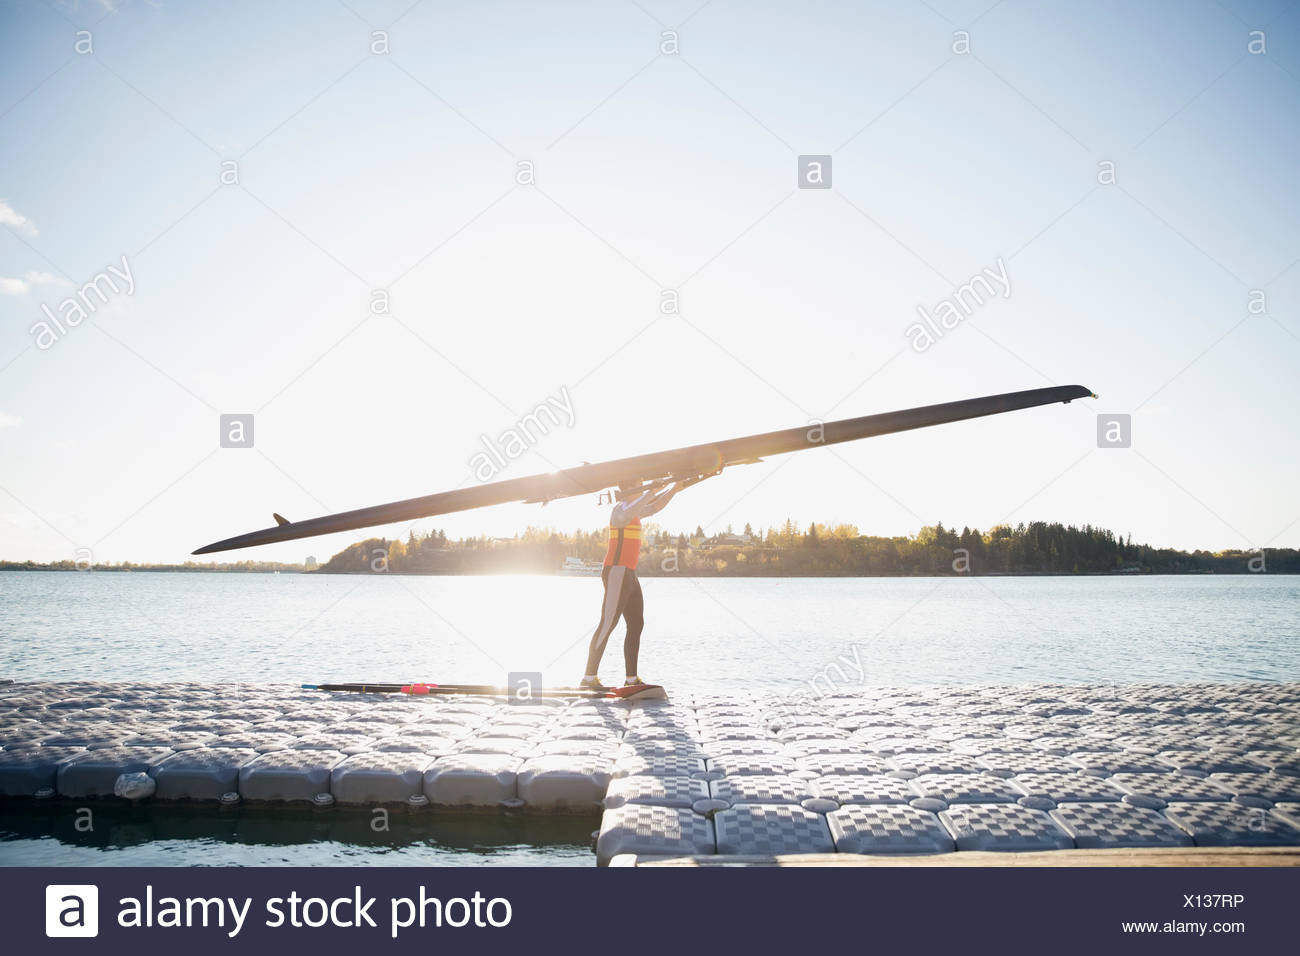 Rower carrying scull overhead at waterfront - Stock Image